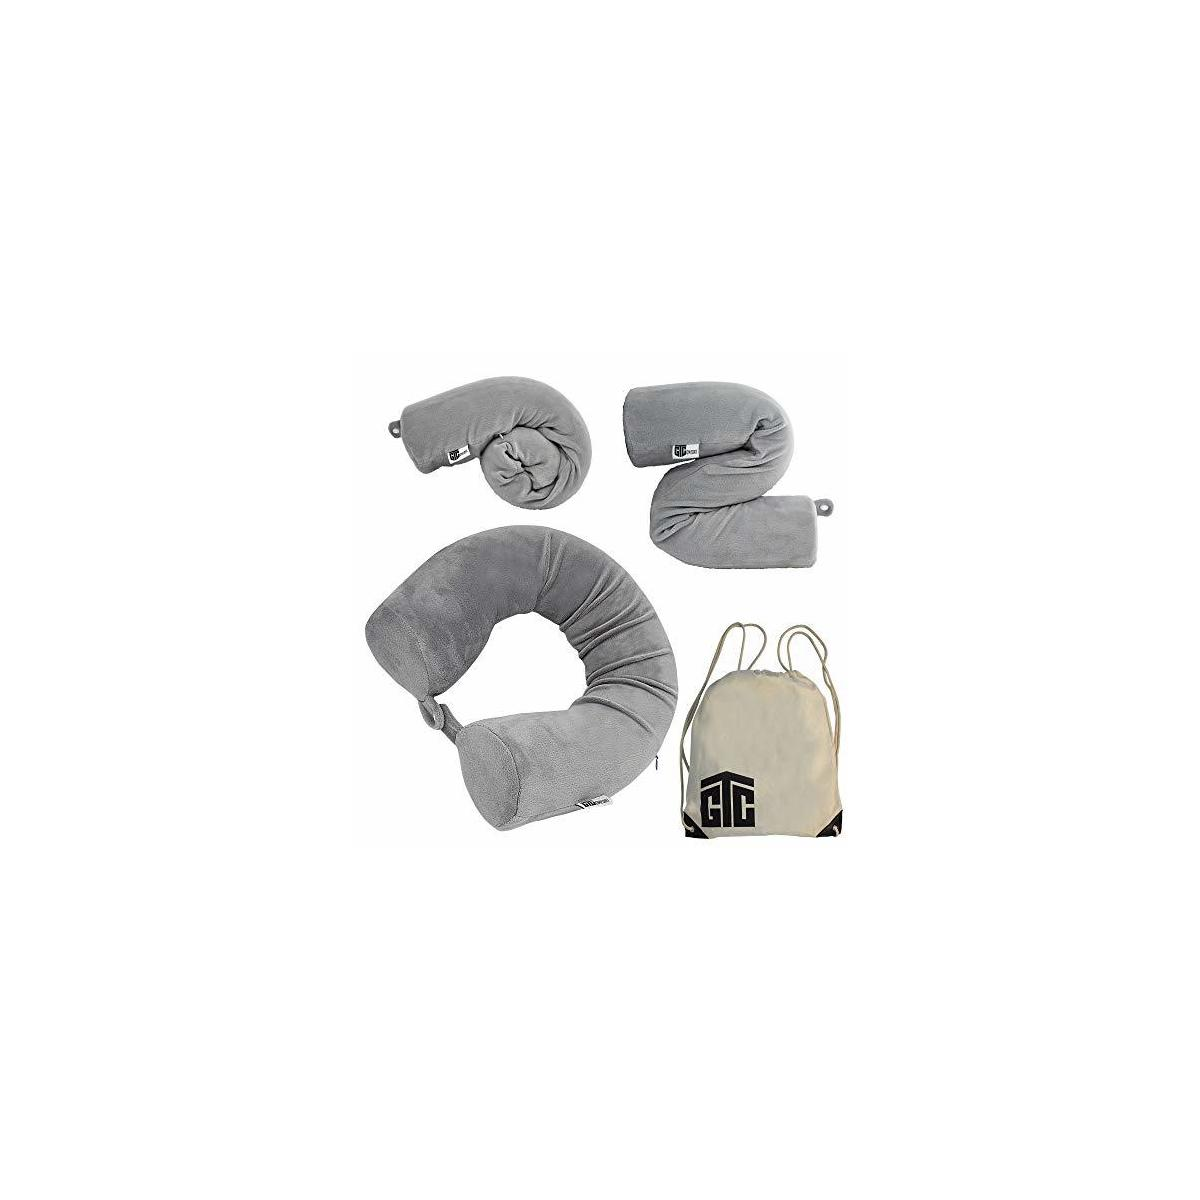 GTComfort Twist Travel Pillow Neck Adjustable Back & Lumbar Support, Memory Foam Lightweight - Accessories for Airplane Train Bus Flights Travelling & Home, Soft & Comfort Sleeping Anywhere